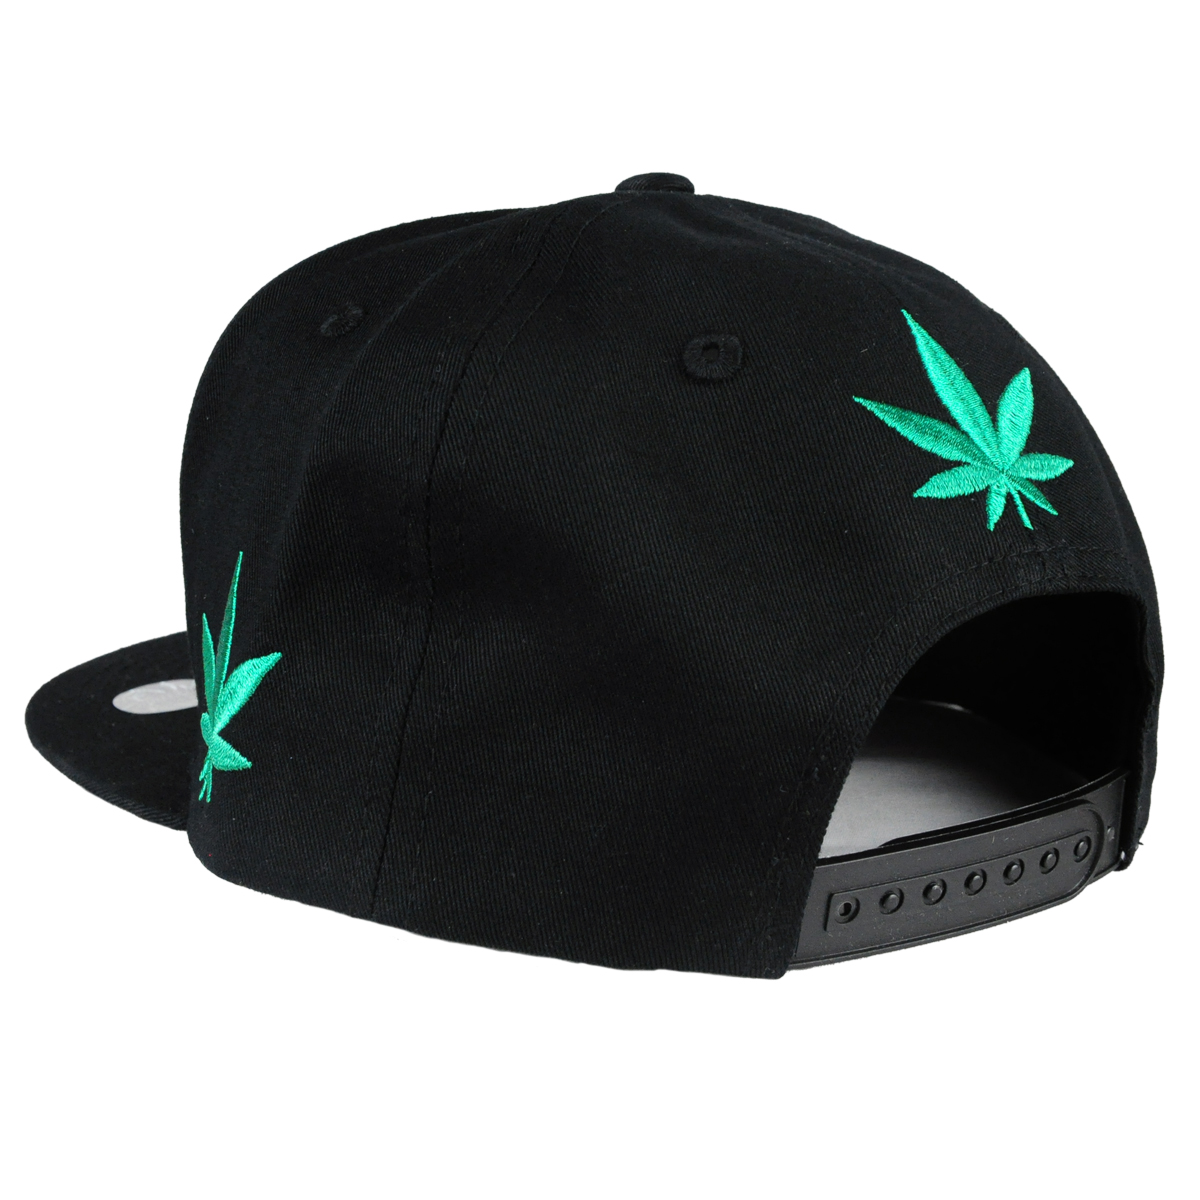 420 Pot Leaf Hat Black